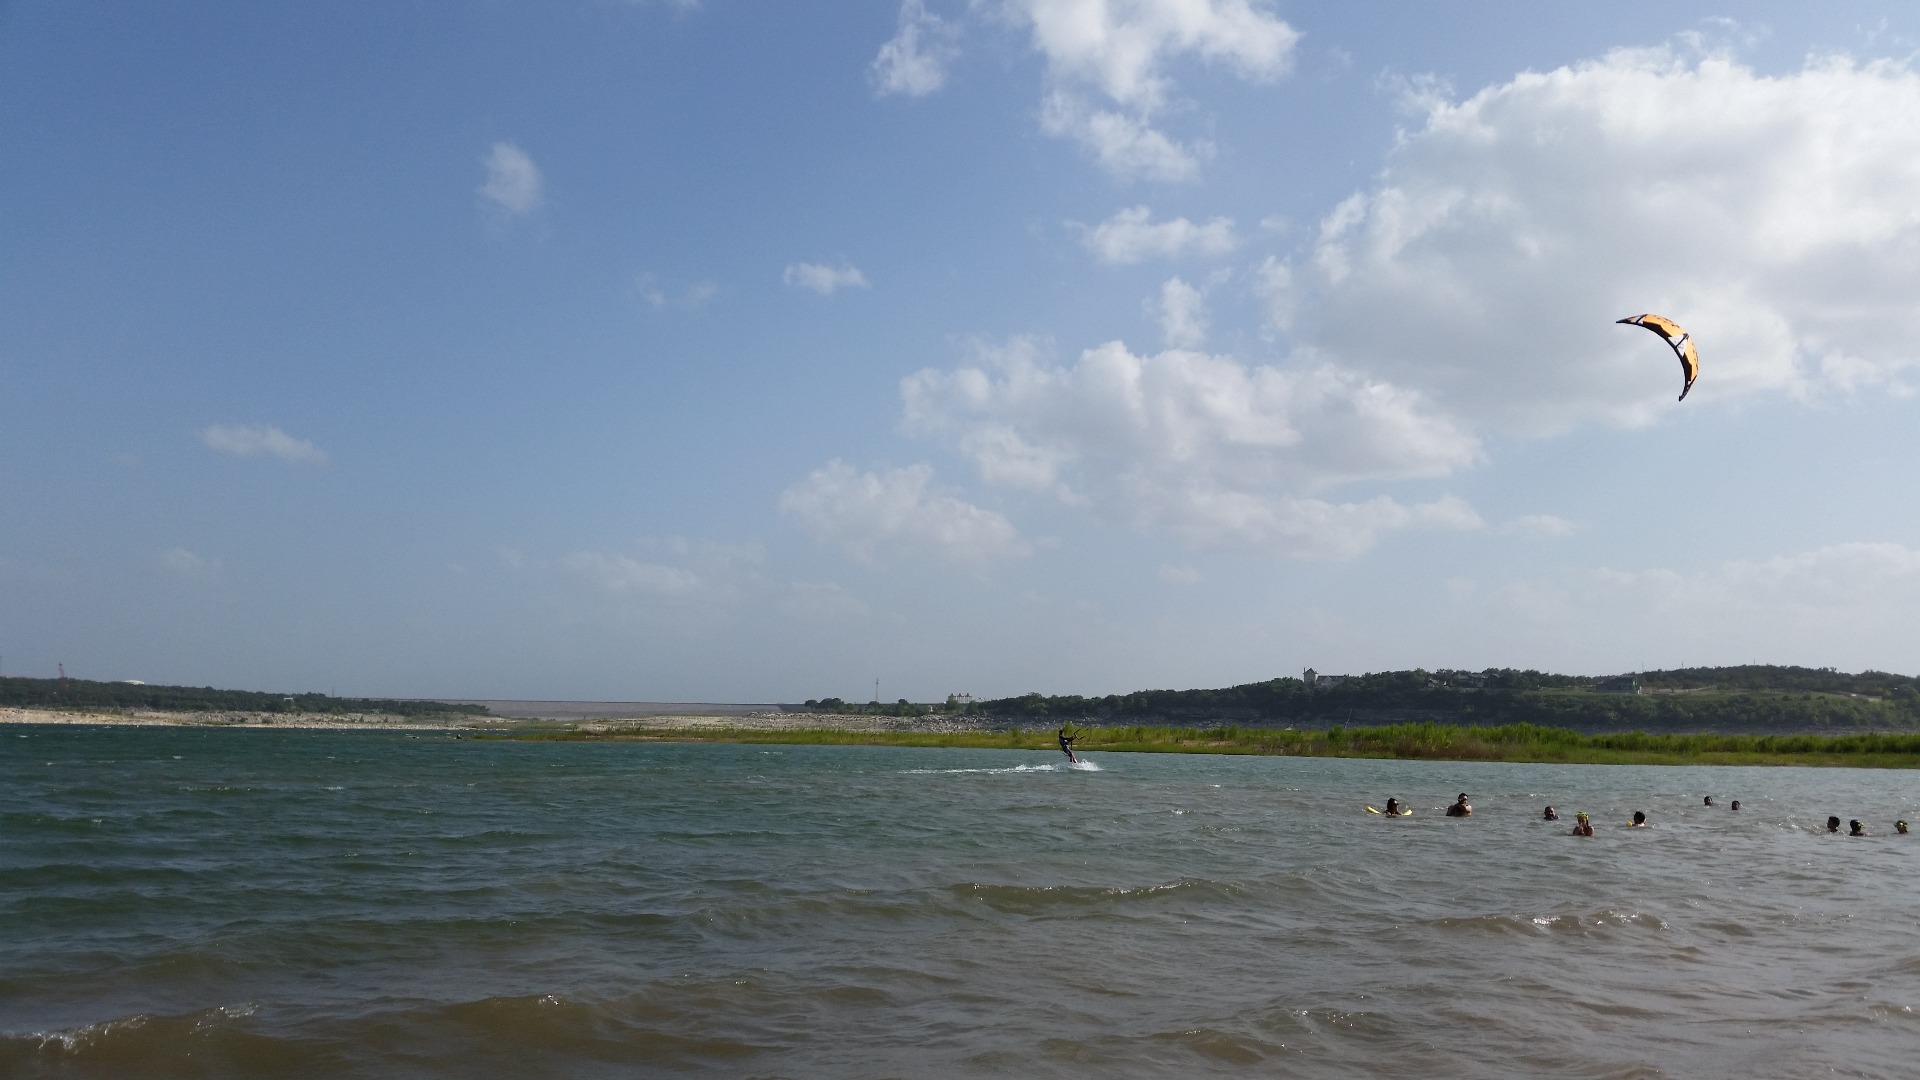 Surfing, swimming and kids playing